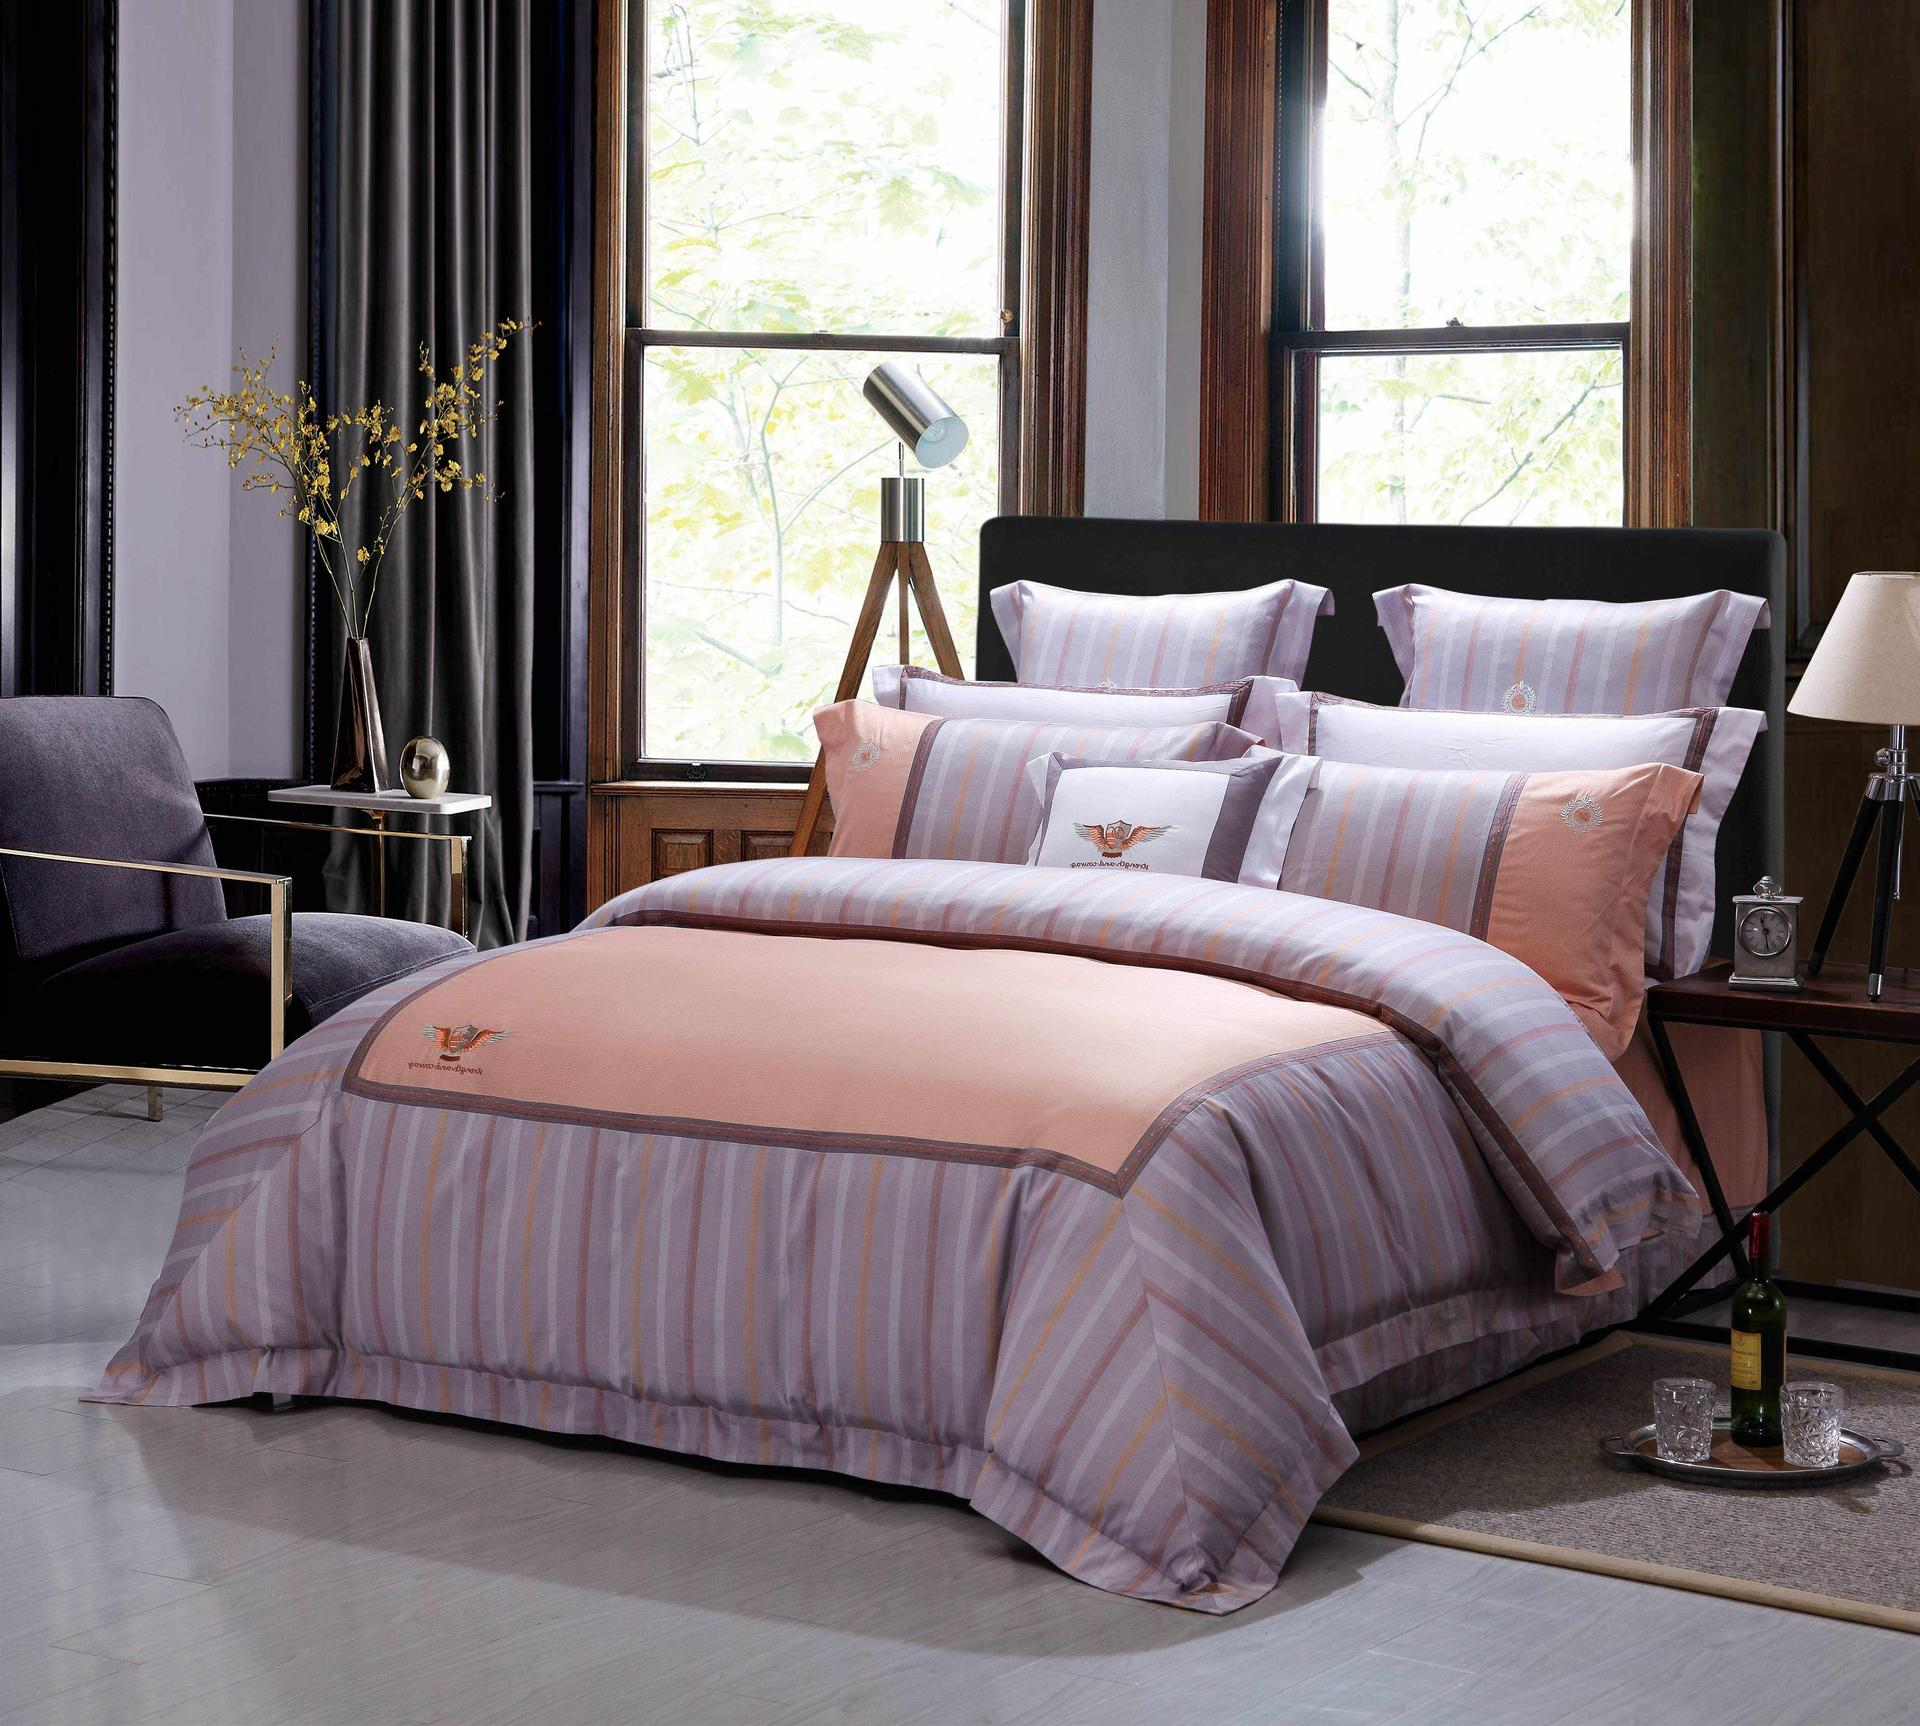 Soft Long-staple Cotton Bed Linen 6887